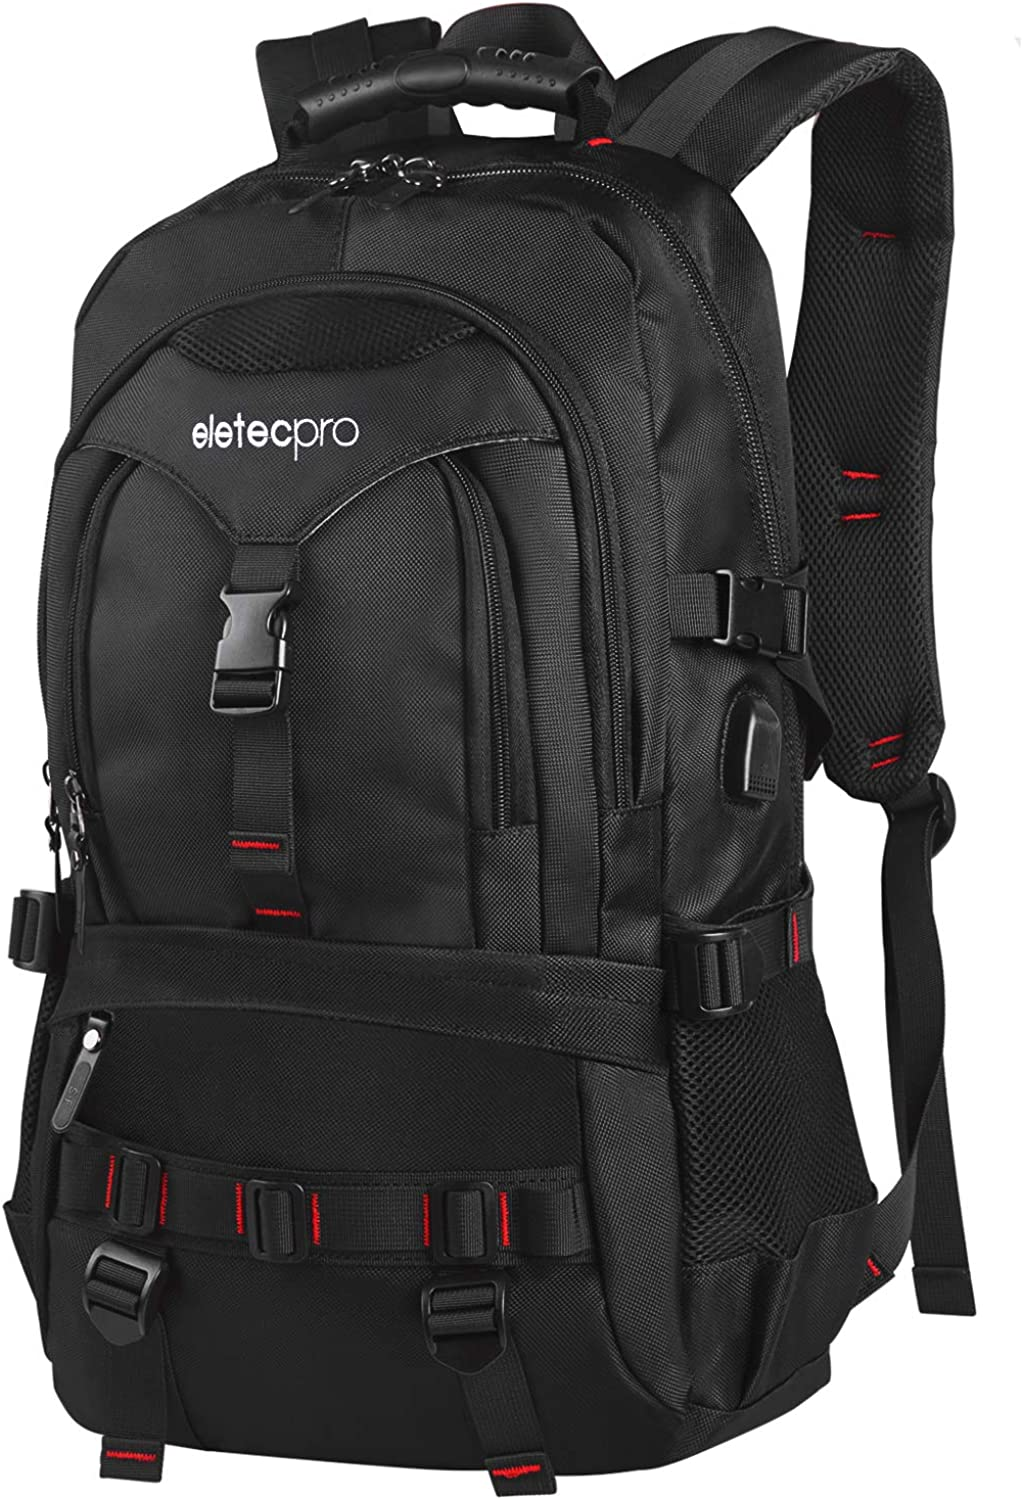 EletecPro 17.3 Inch Laptop Travel Backpack with USB Charging Port